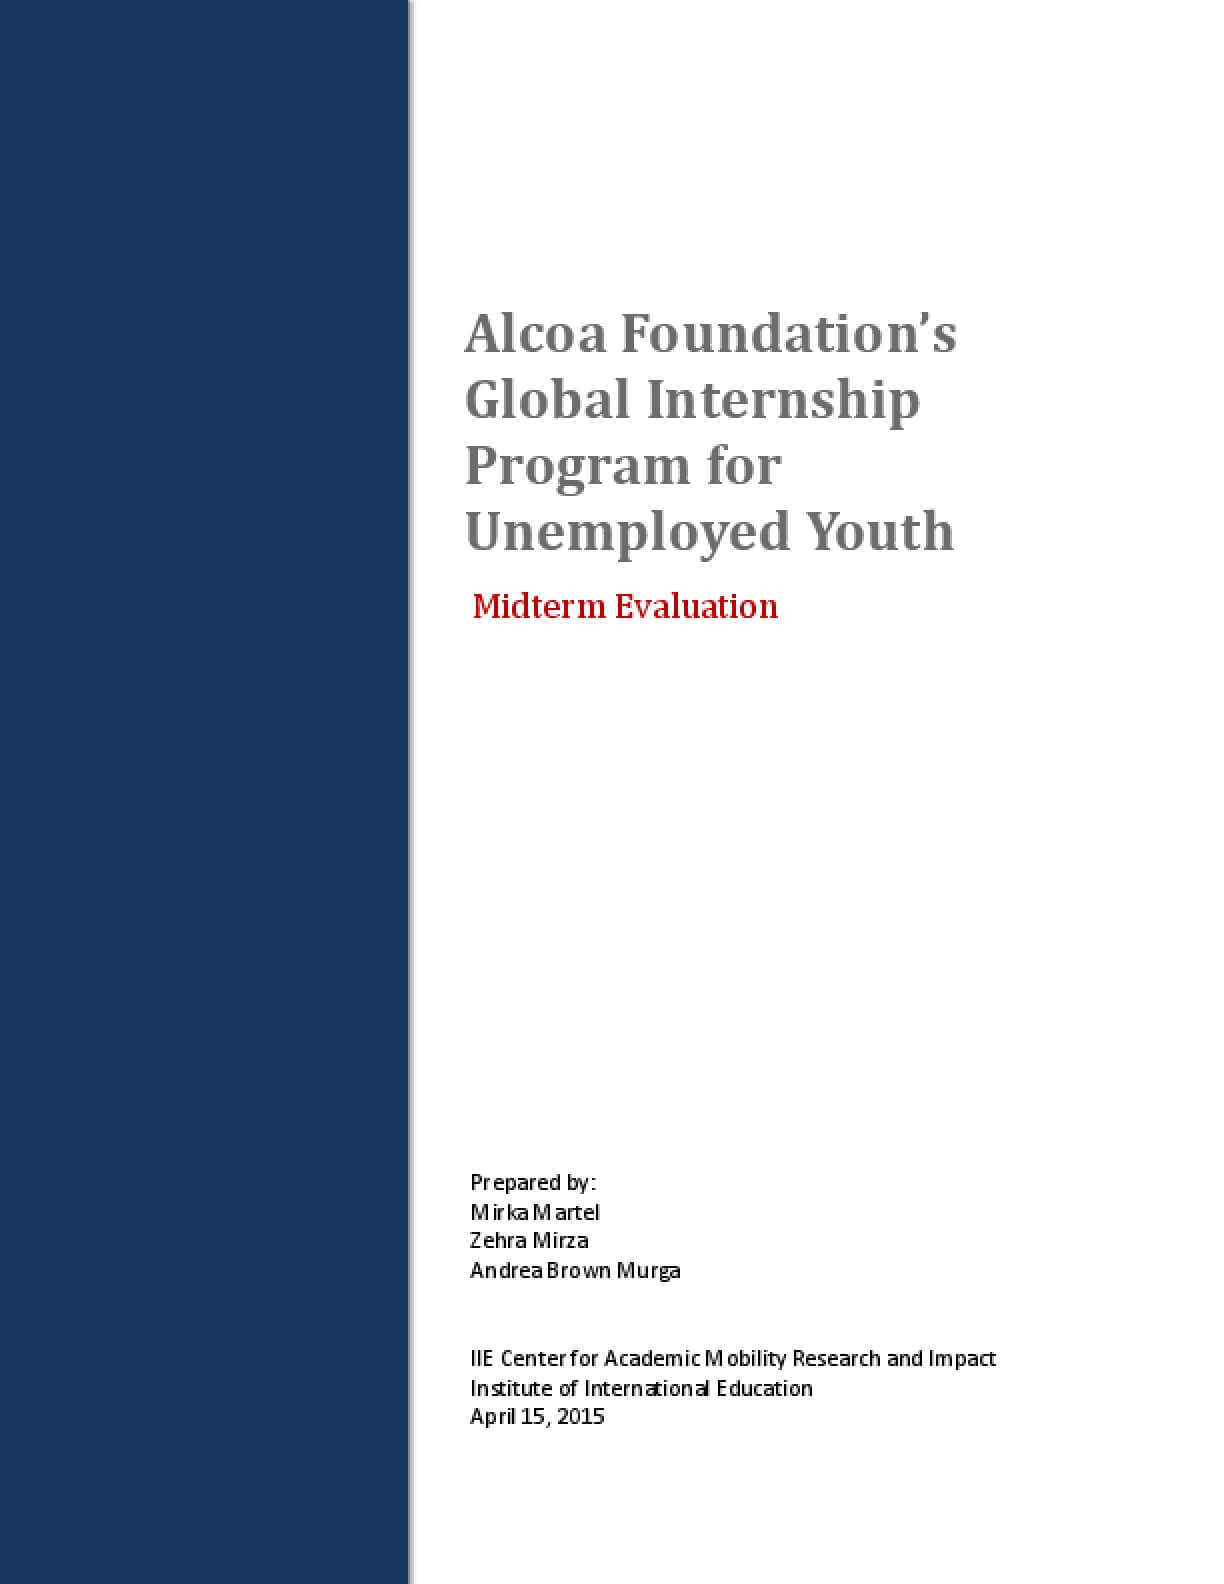 Alcoa Foundation's Global Internship Program for Unemployed Youth Midterm Evaluation